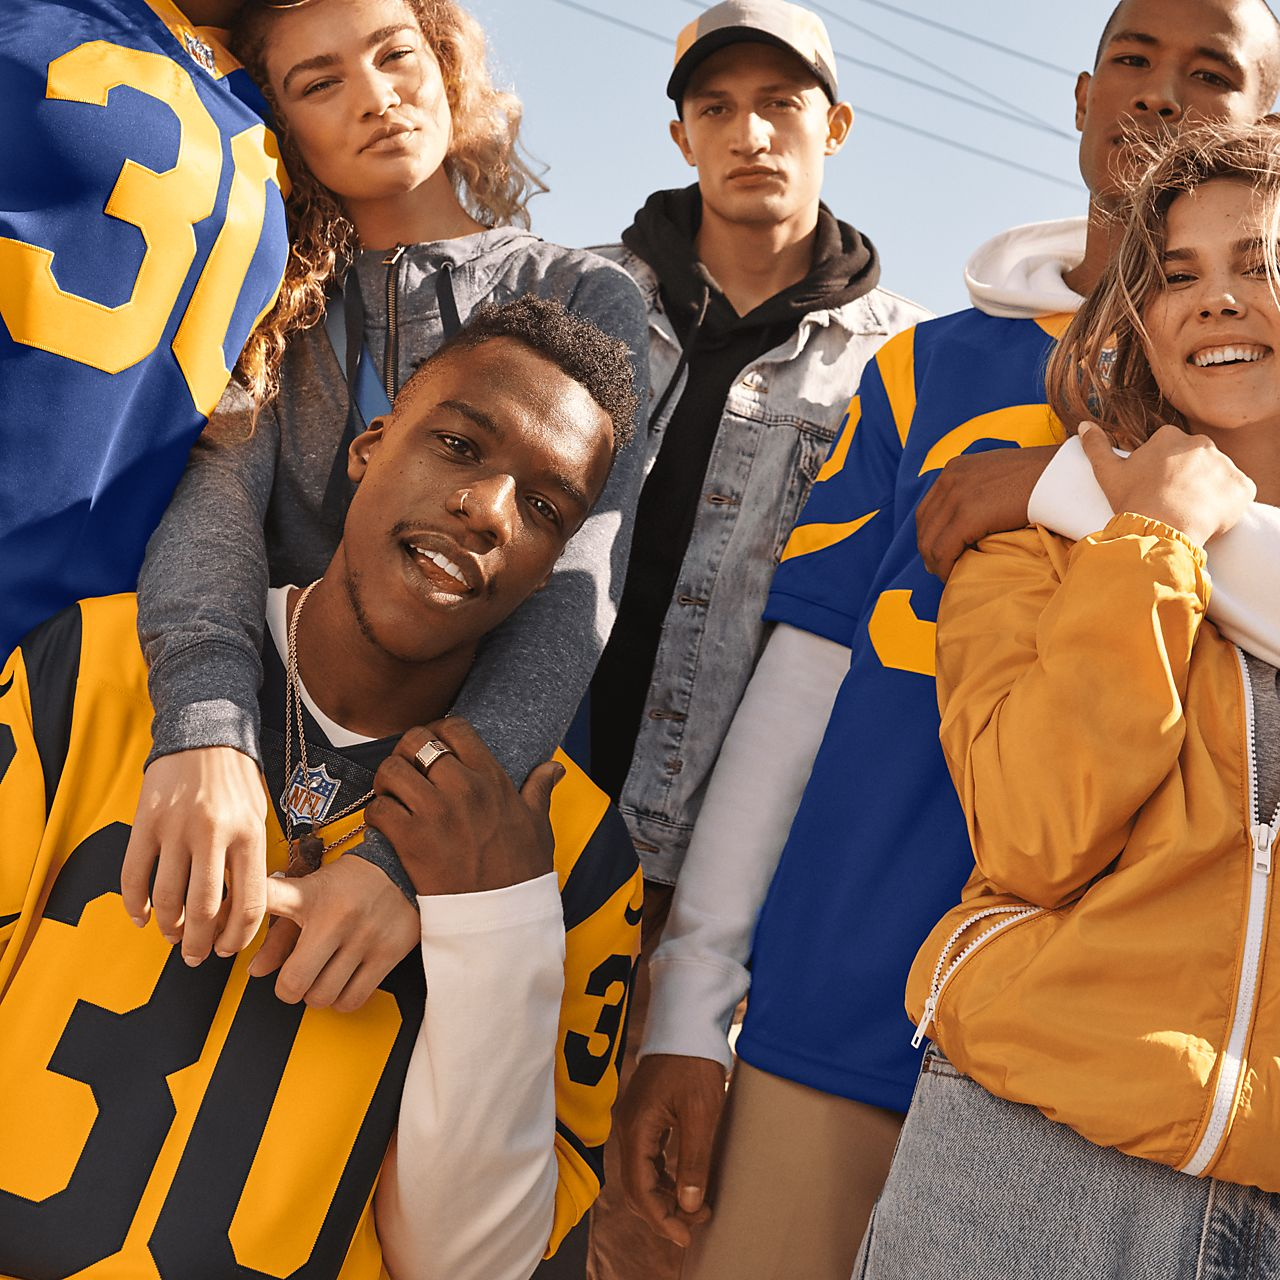 buy online bb1b1 724ff NFL Los Angeles Rams Limited (Todd Gurley) Men's Football Jersey